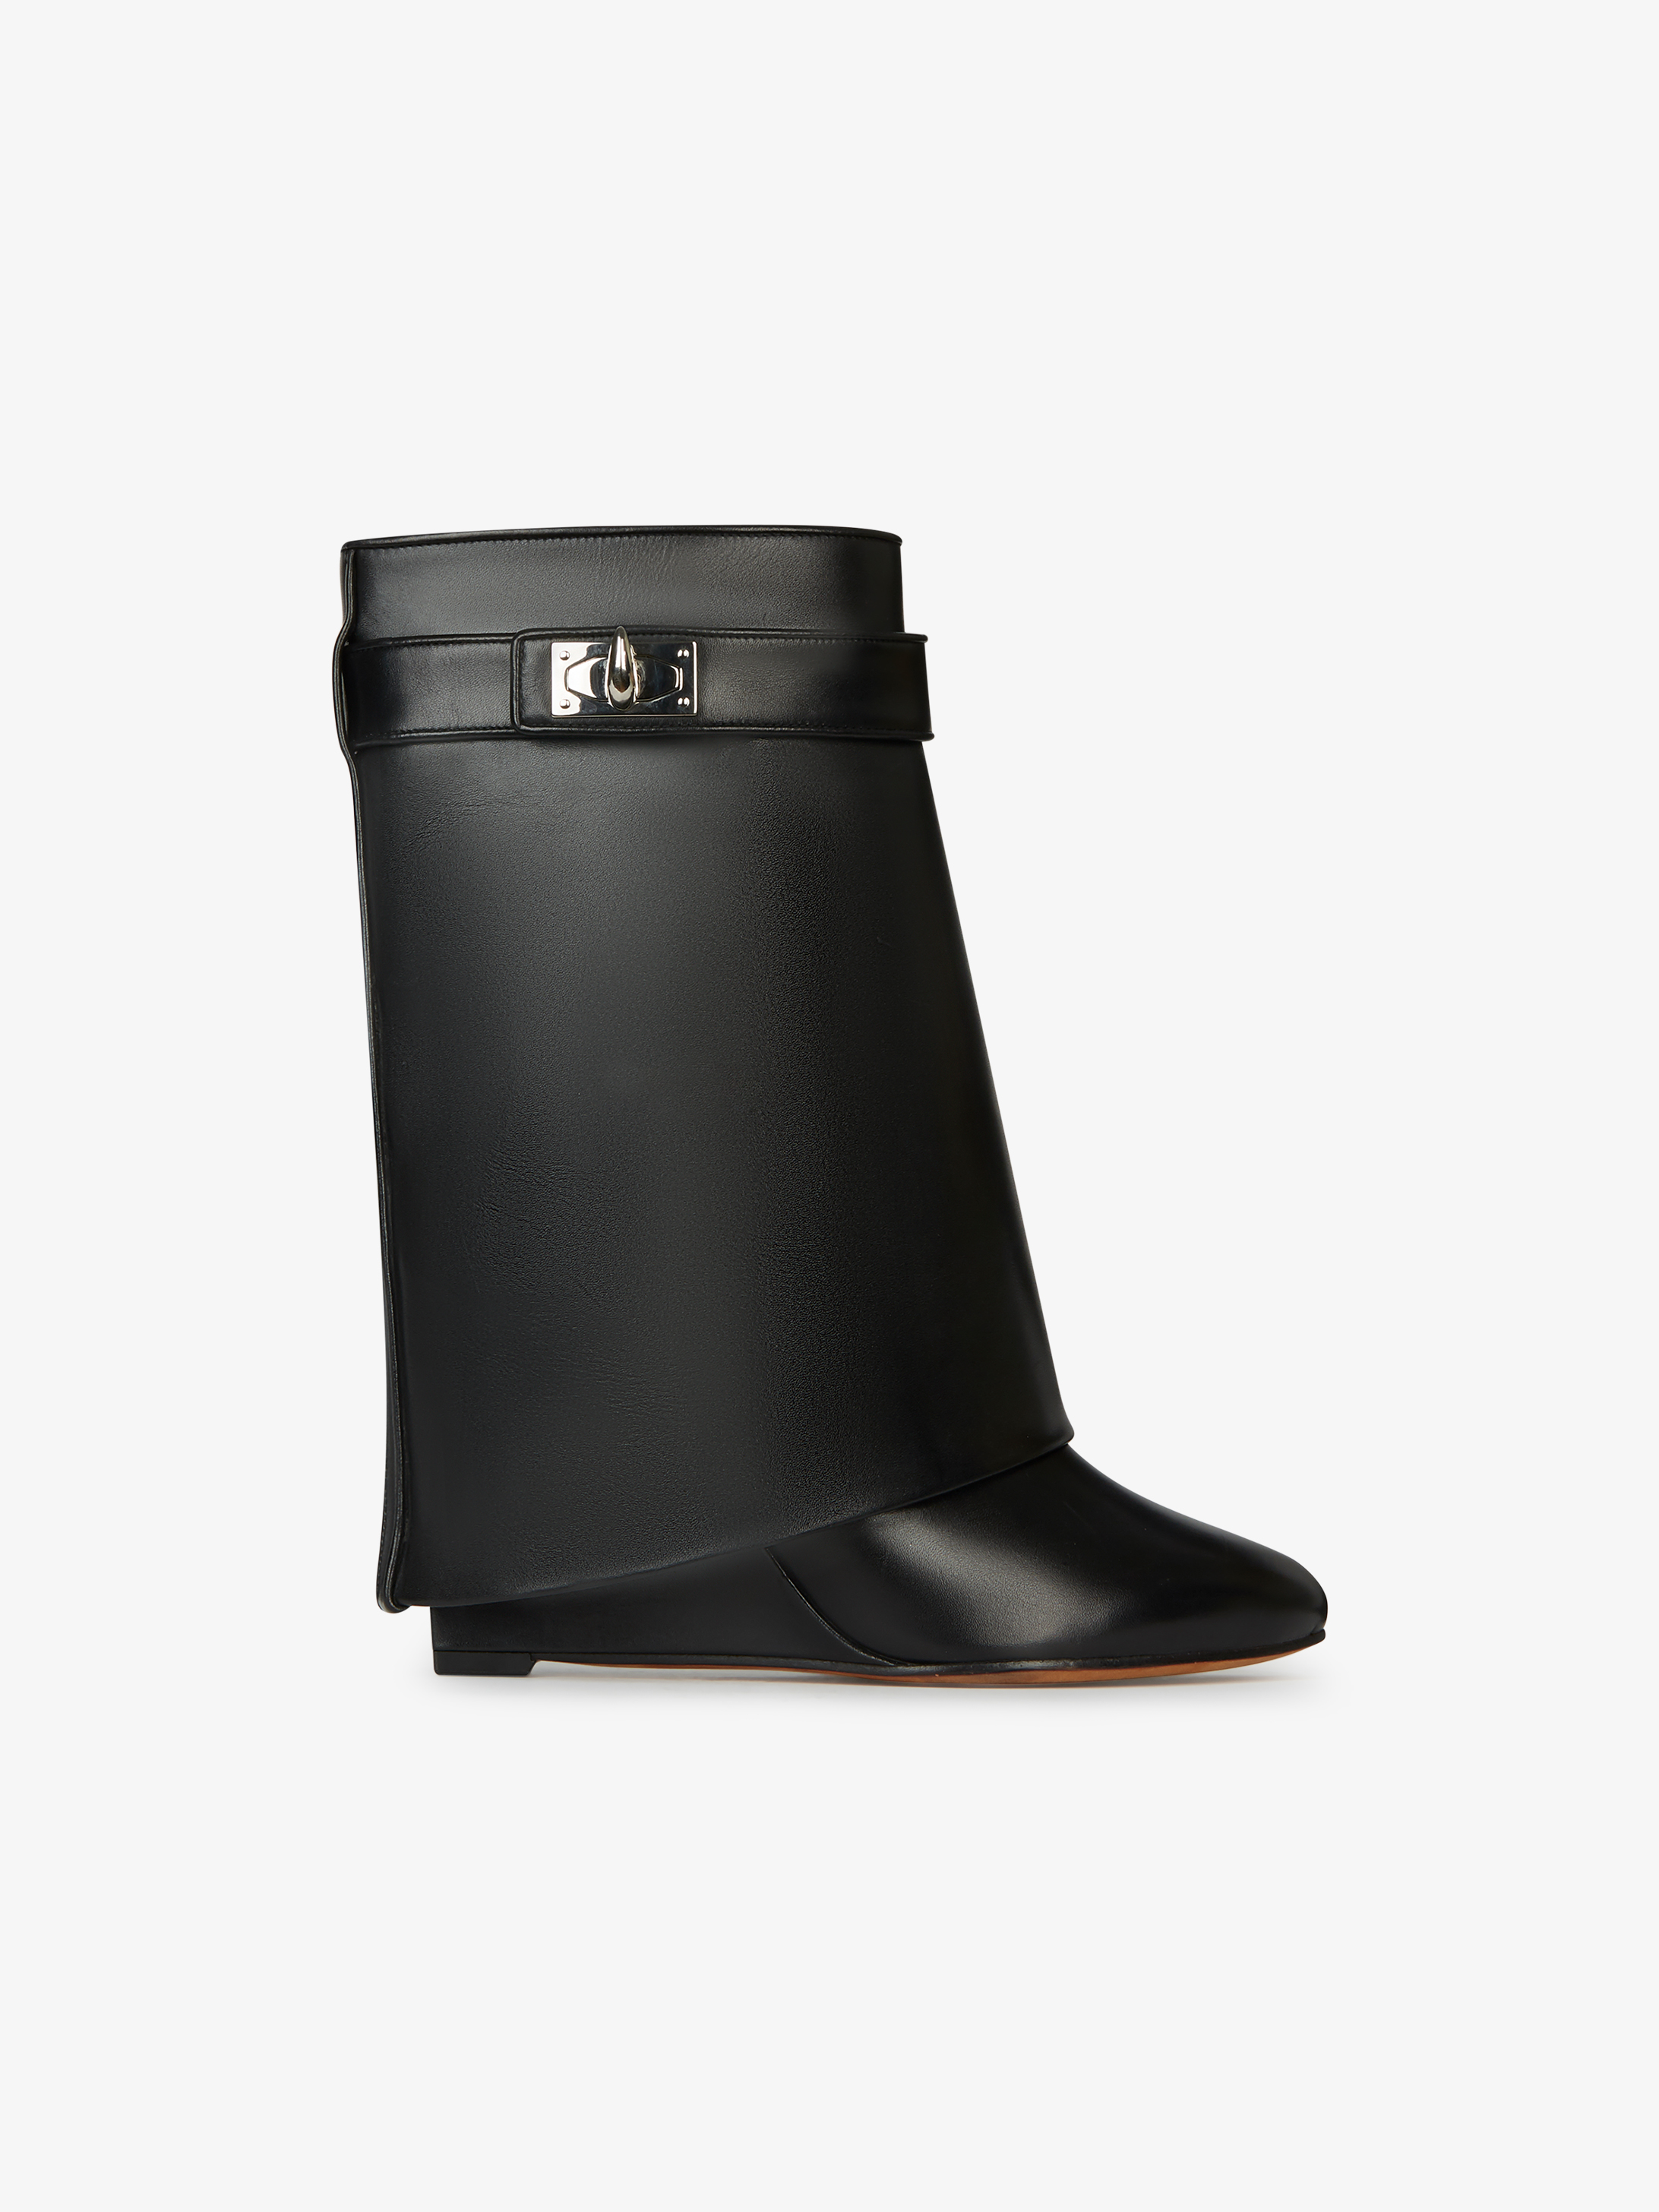 Shark Lock ankle boots in leather